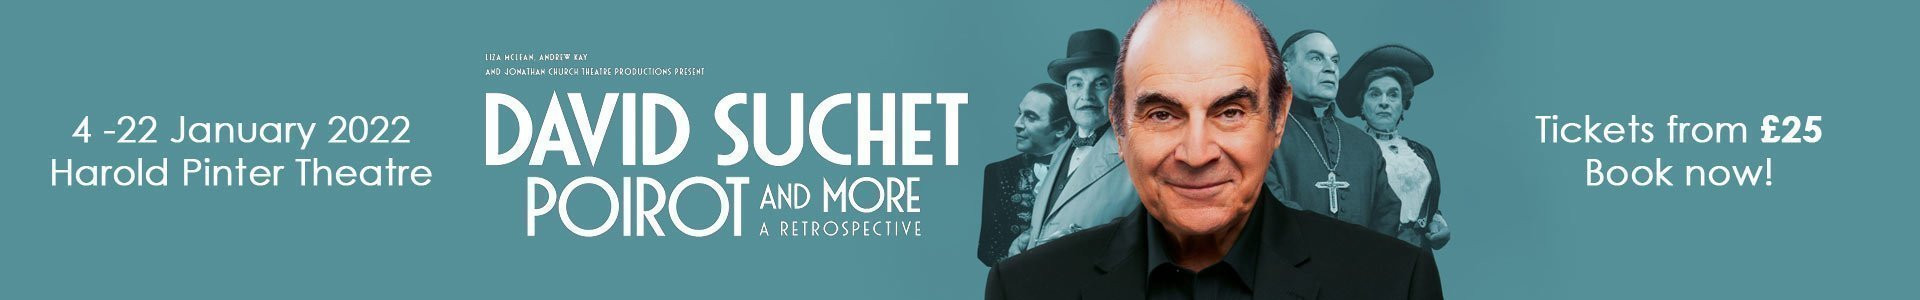 David Suchet - Poirot and More tickets now on sale!